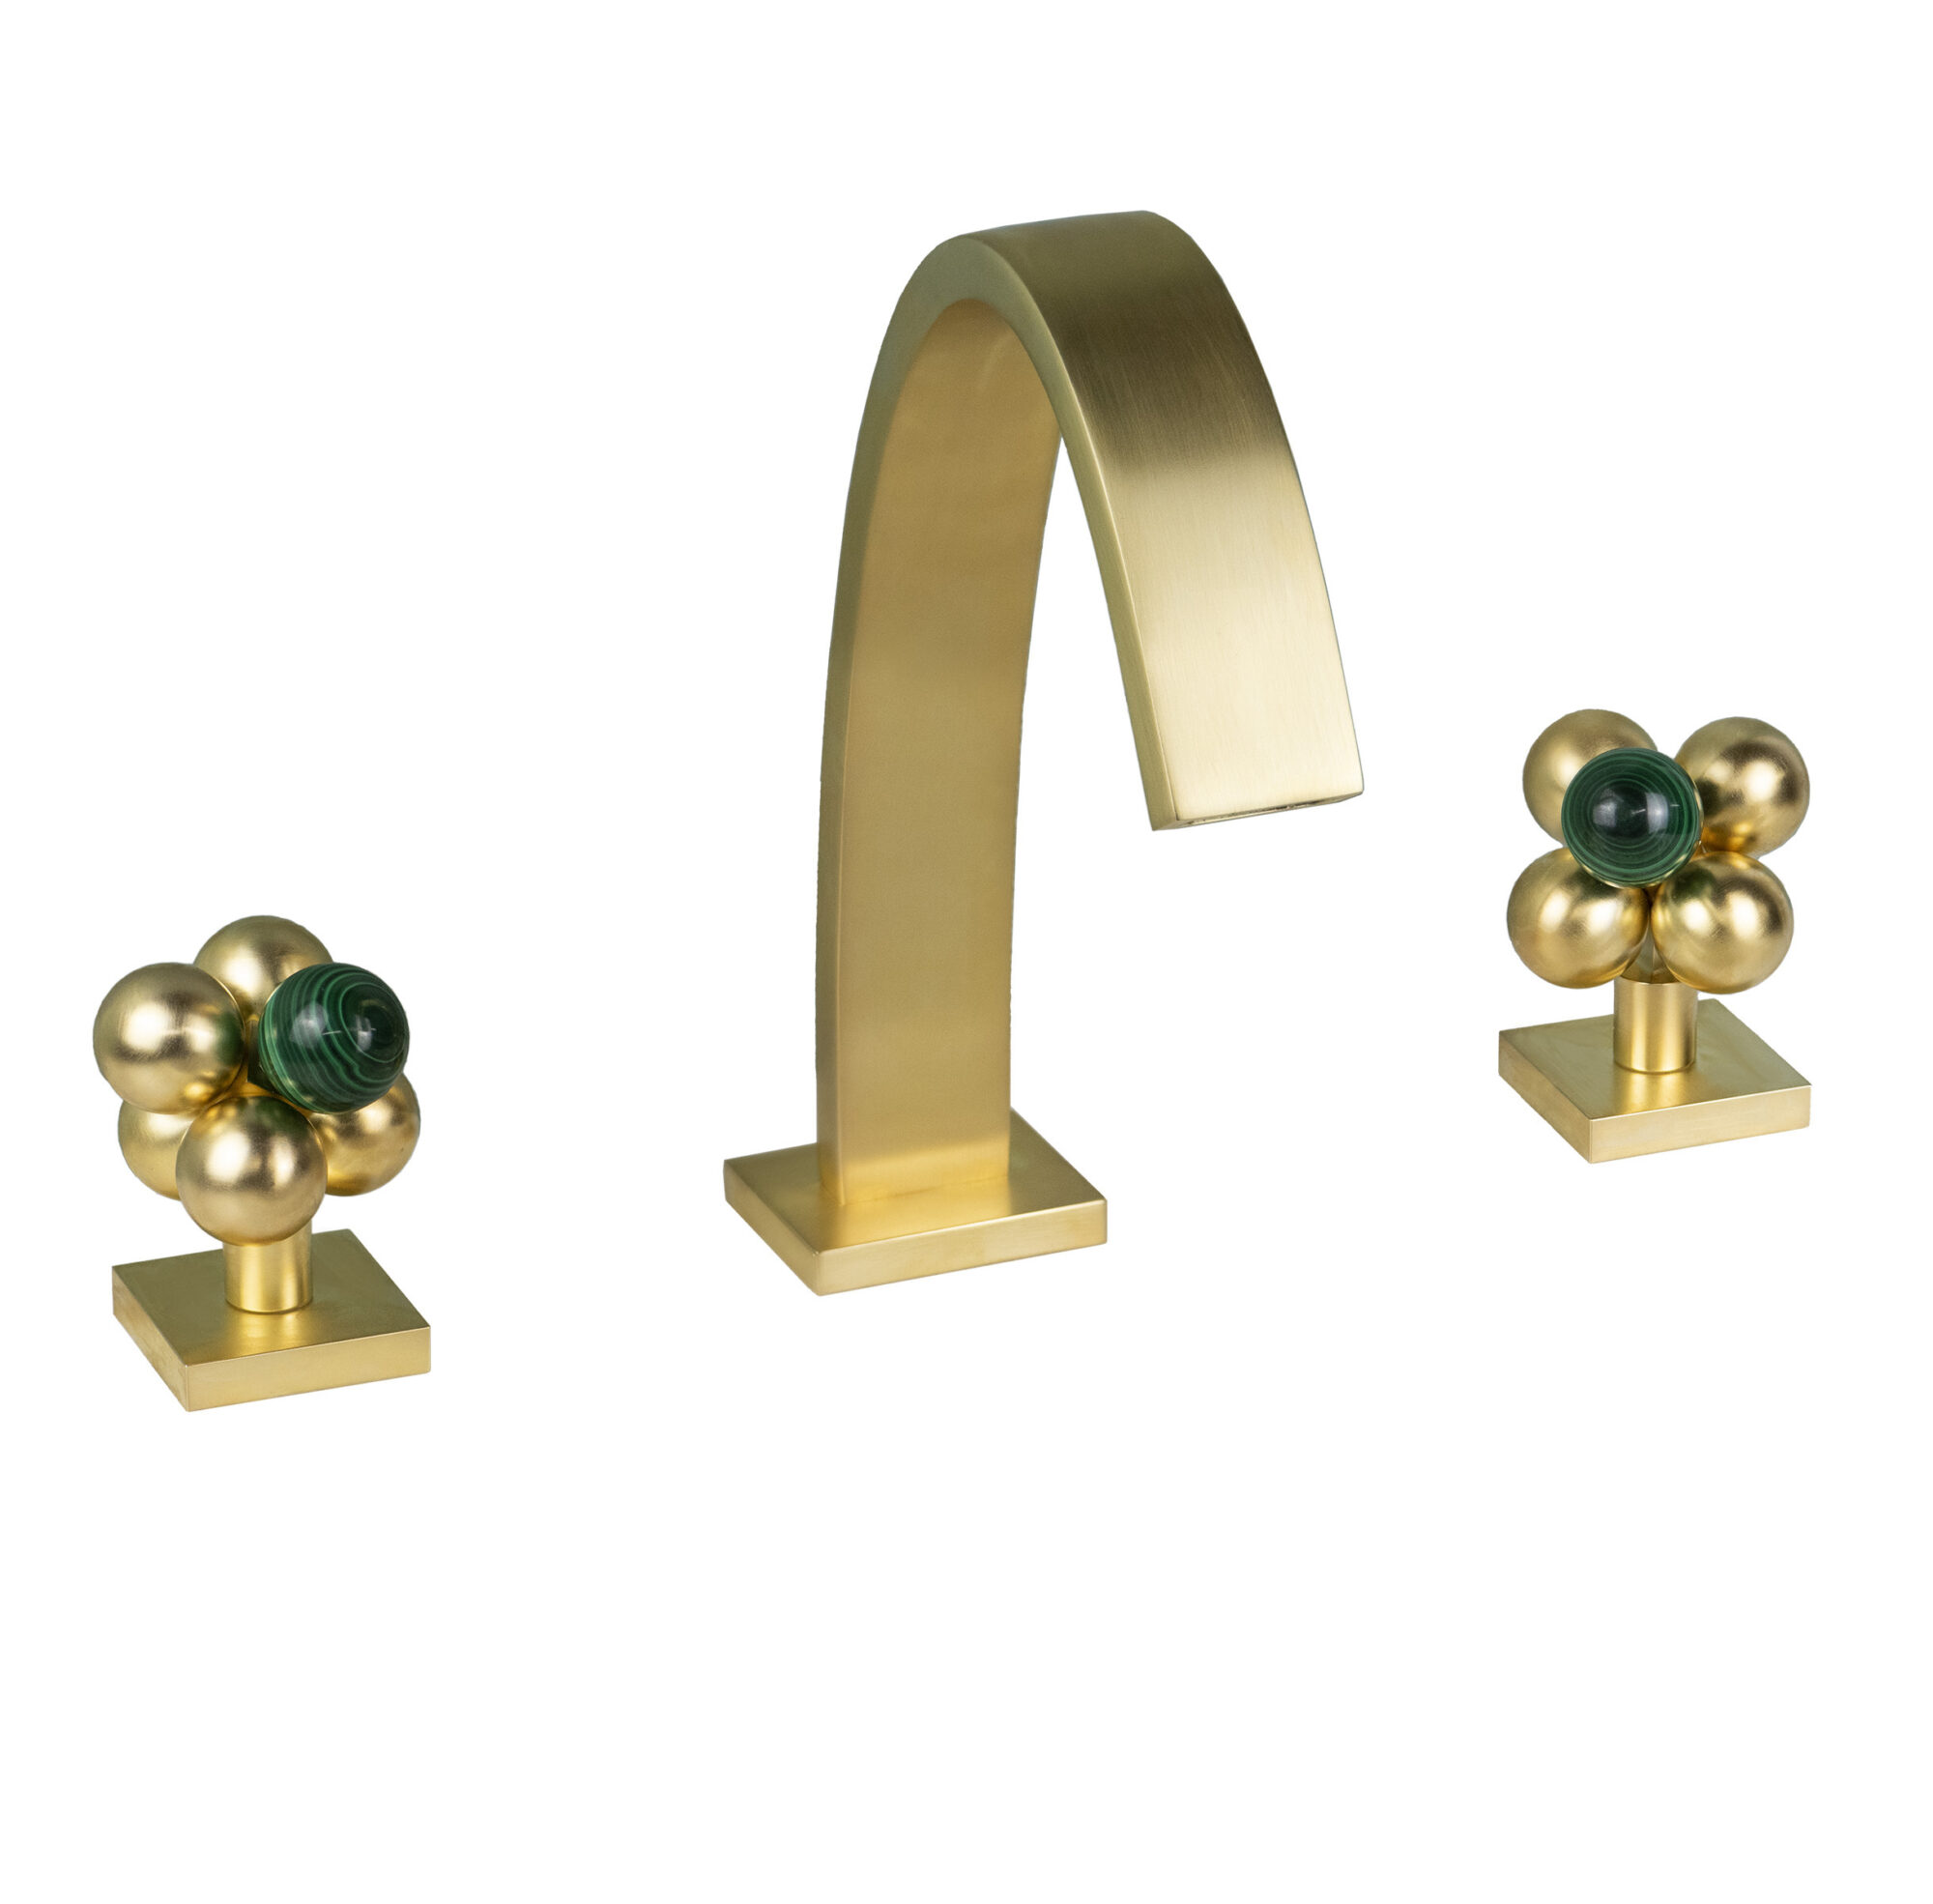 sherle wagner faucet